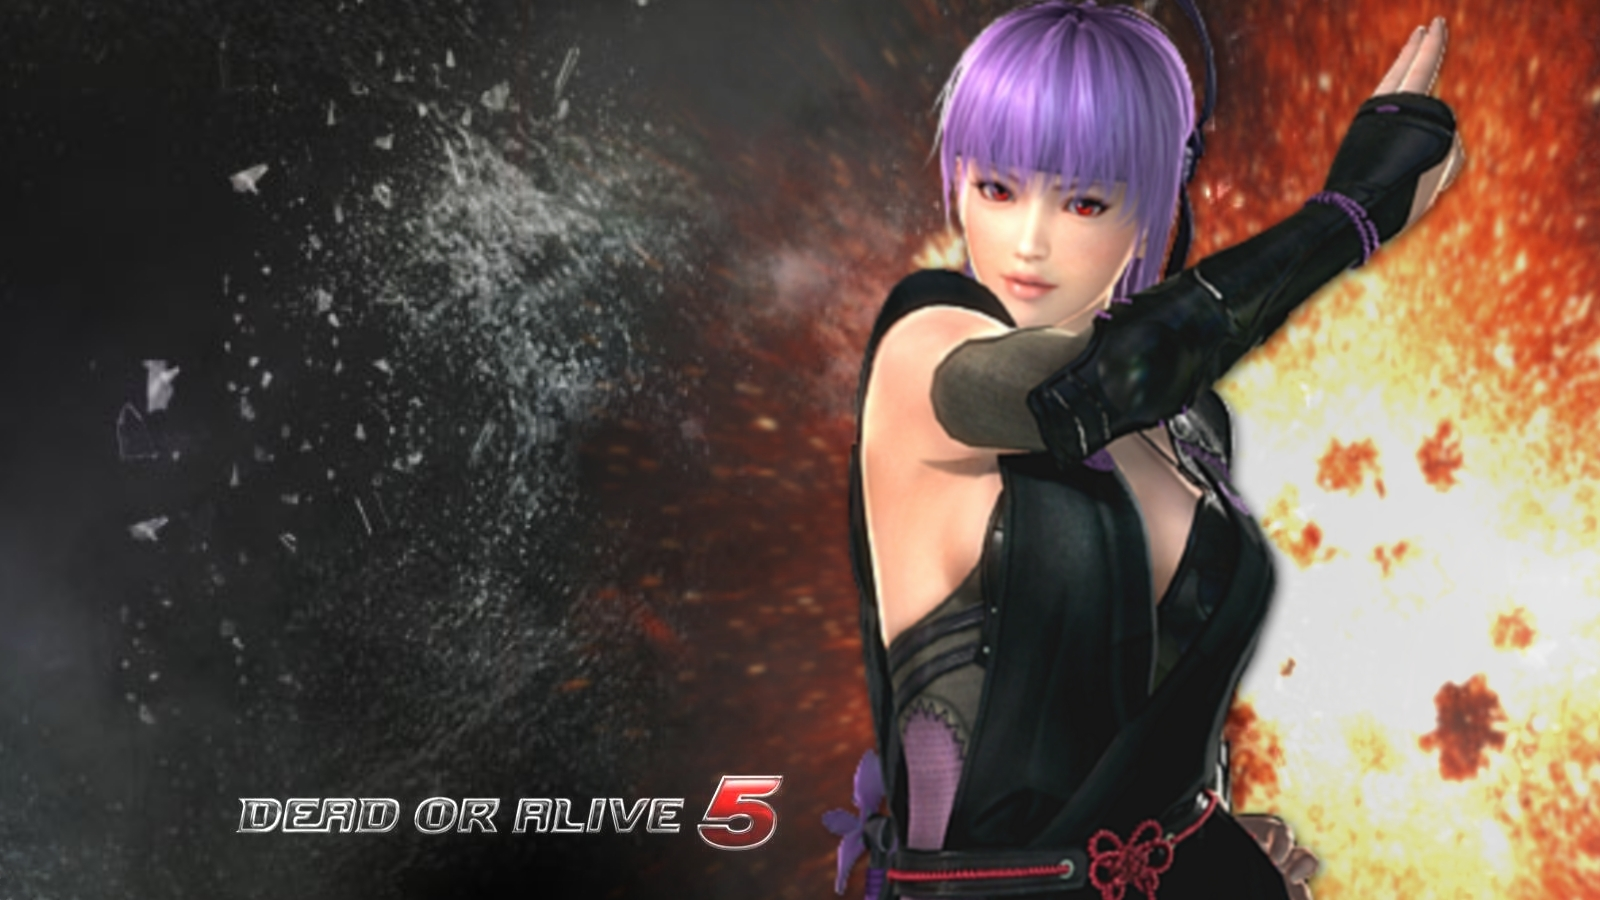 ayane dead or alive 5 wallpaper hd wallpapers high definition 1600x900